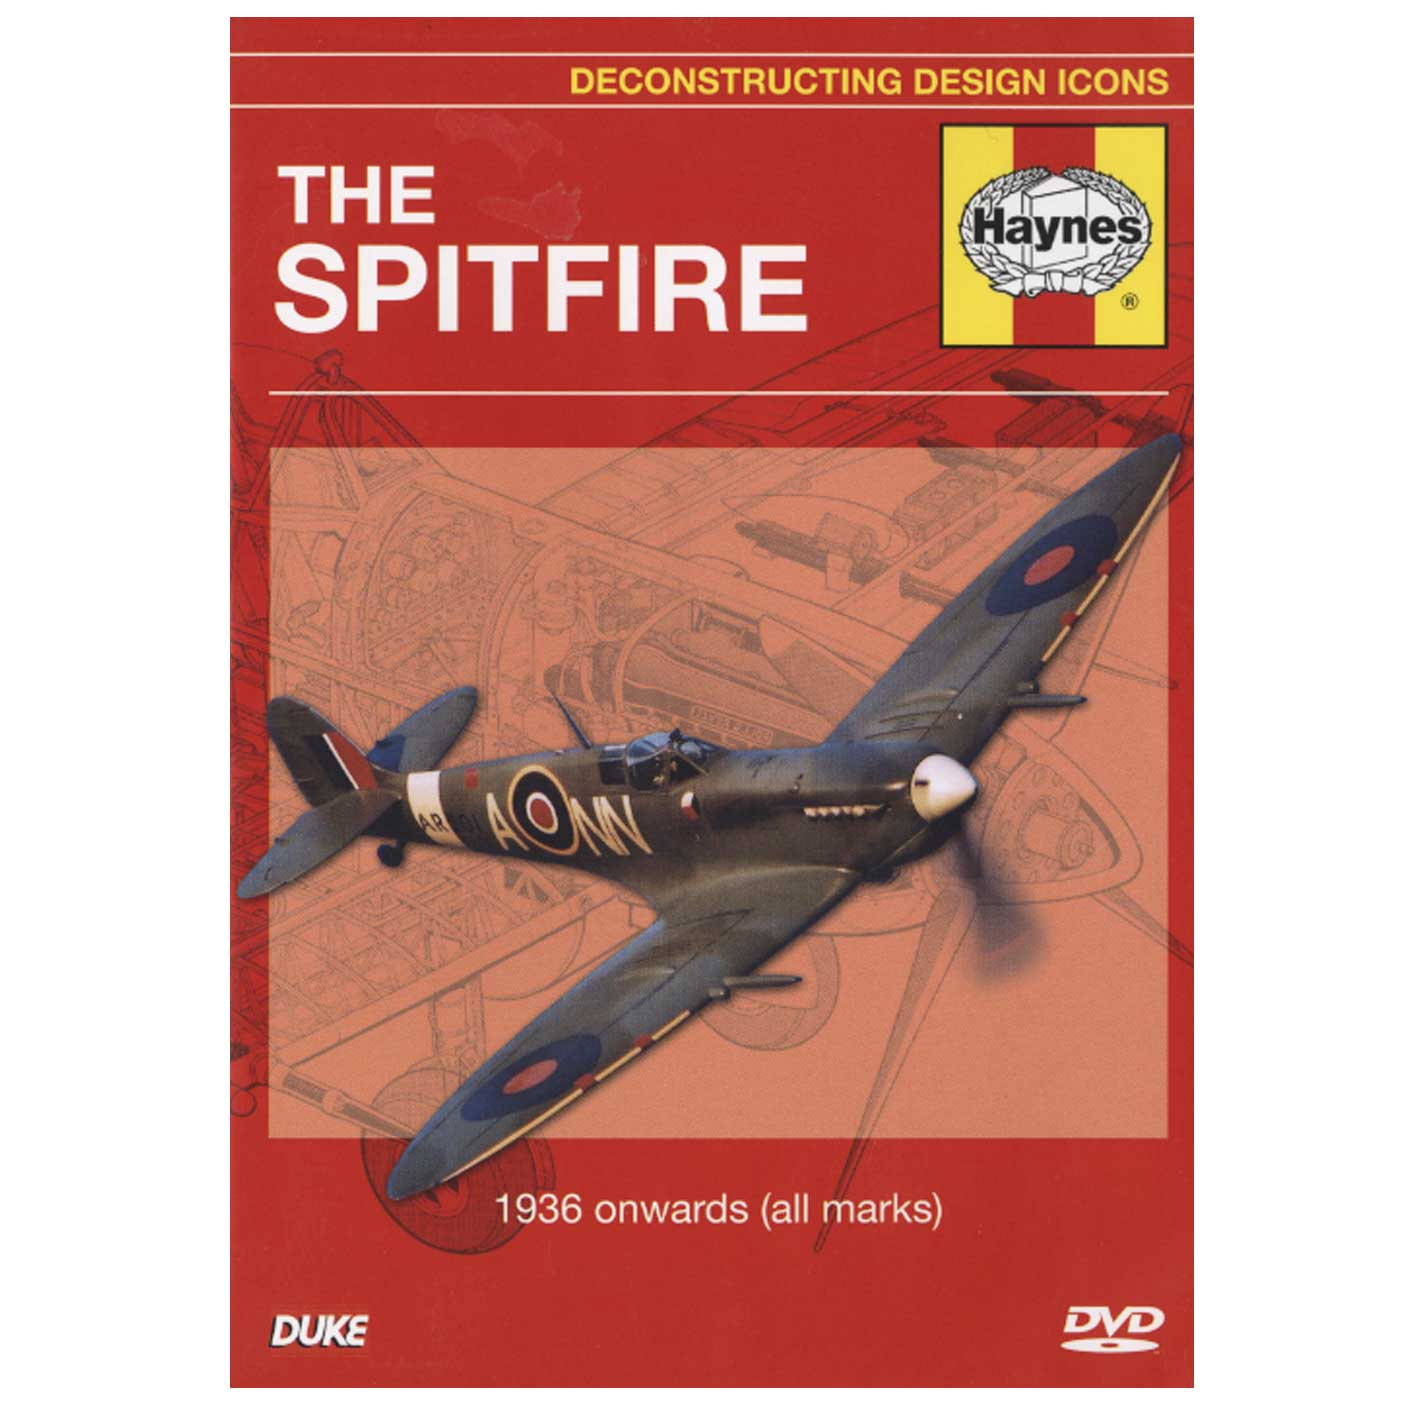 Deconstructing Design Icons: The Spitfire